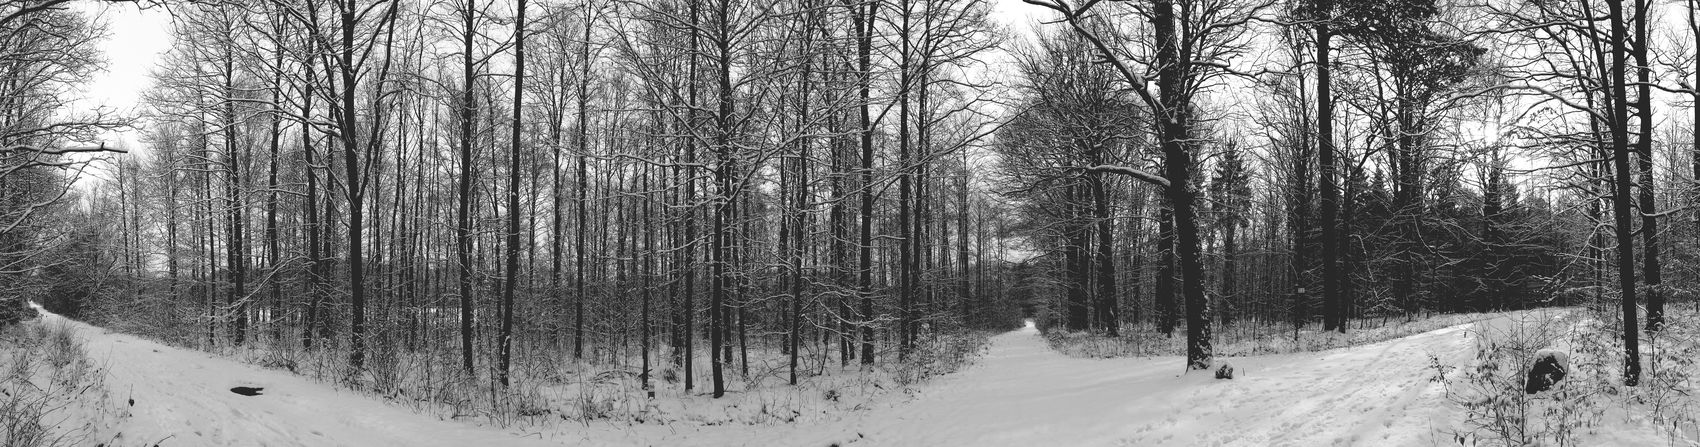 Winter Nature Photography Smartphonephotography Nature_collection Wintertime Zielony Las Forest Panoramic Panoramic Photography Nature